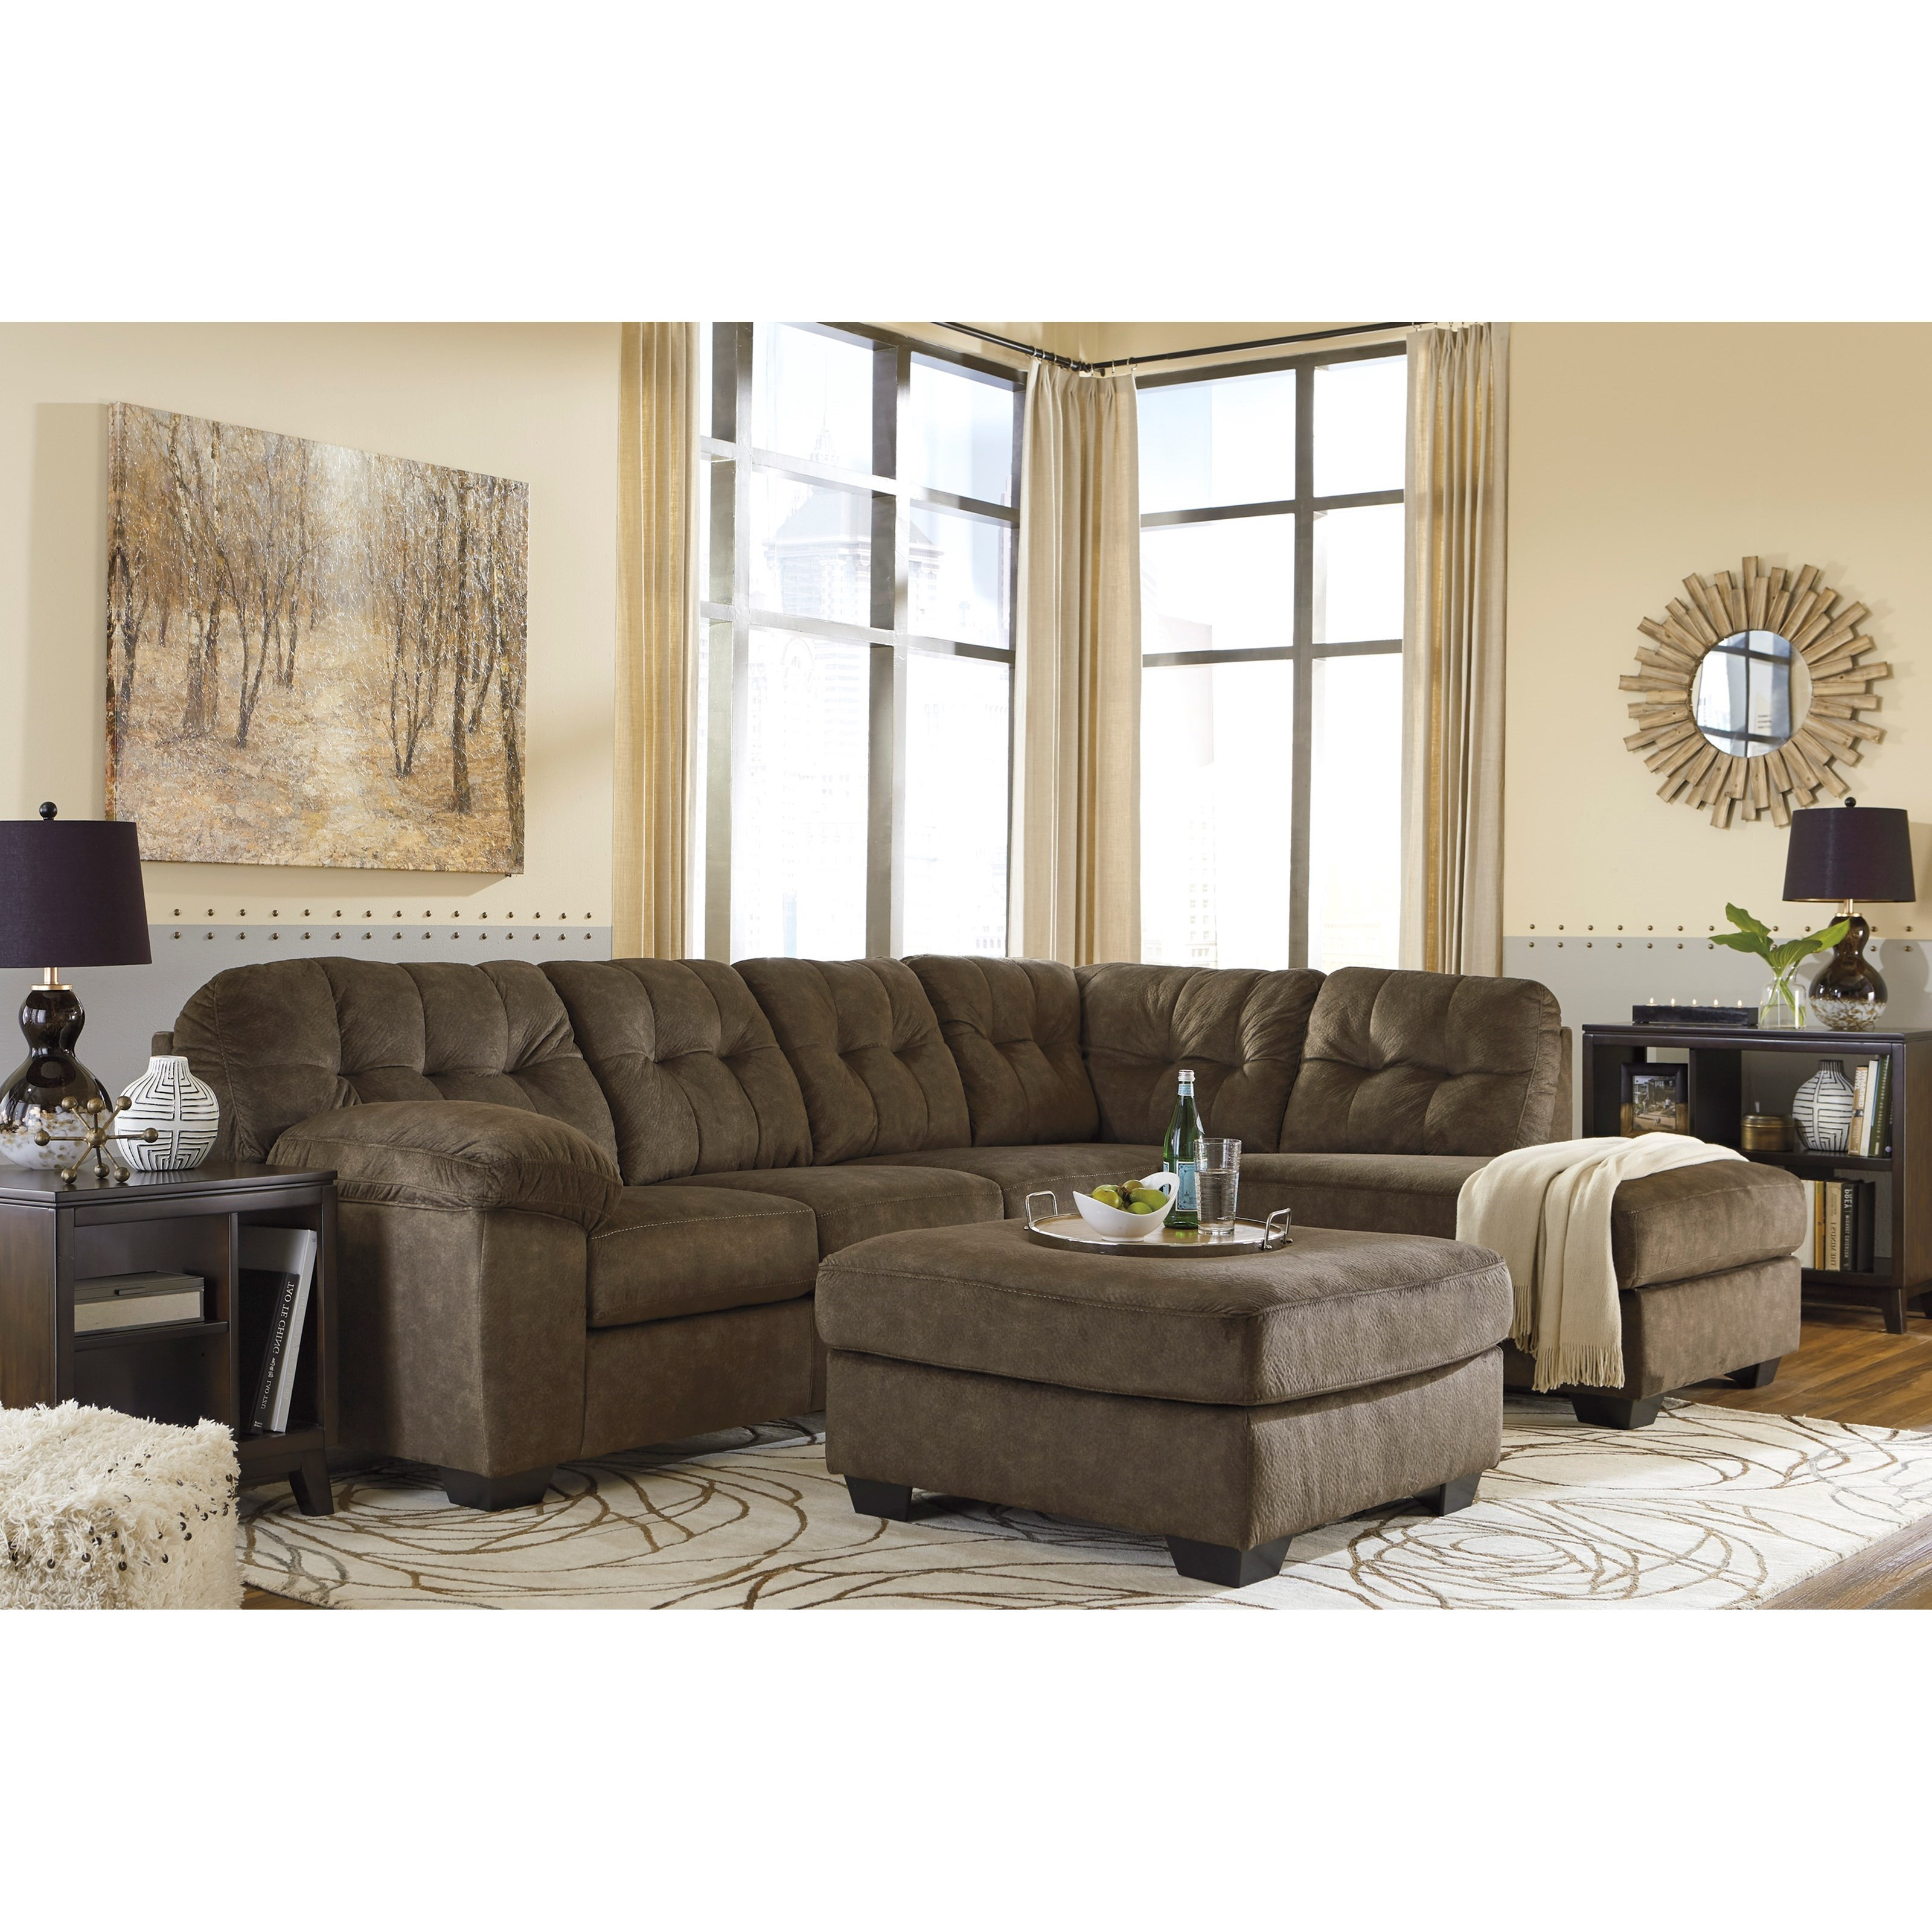 Signature Design By Ashley Accrington Sectional With Right